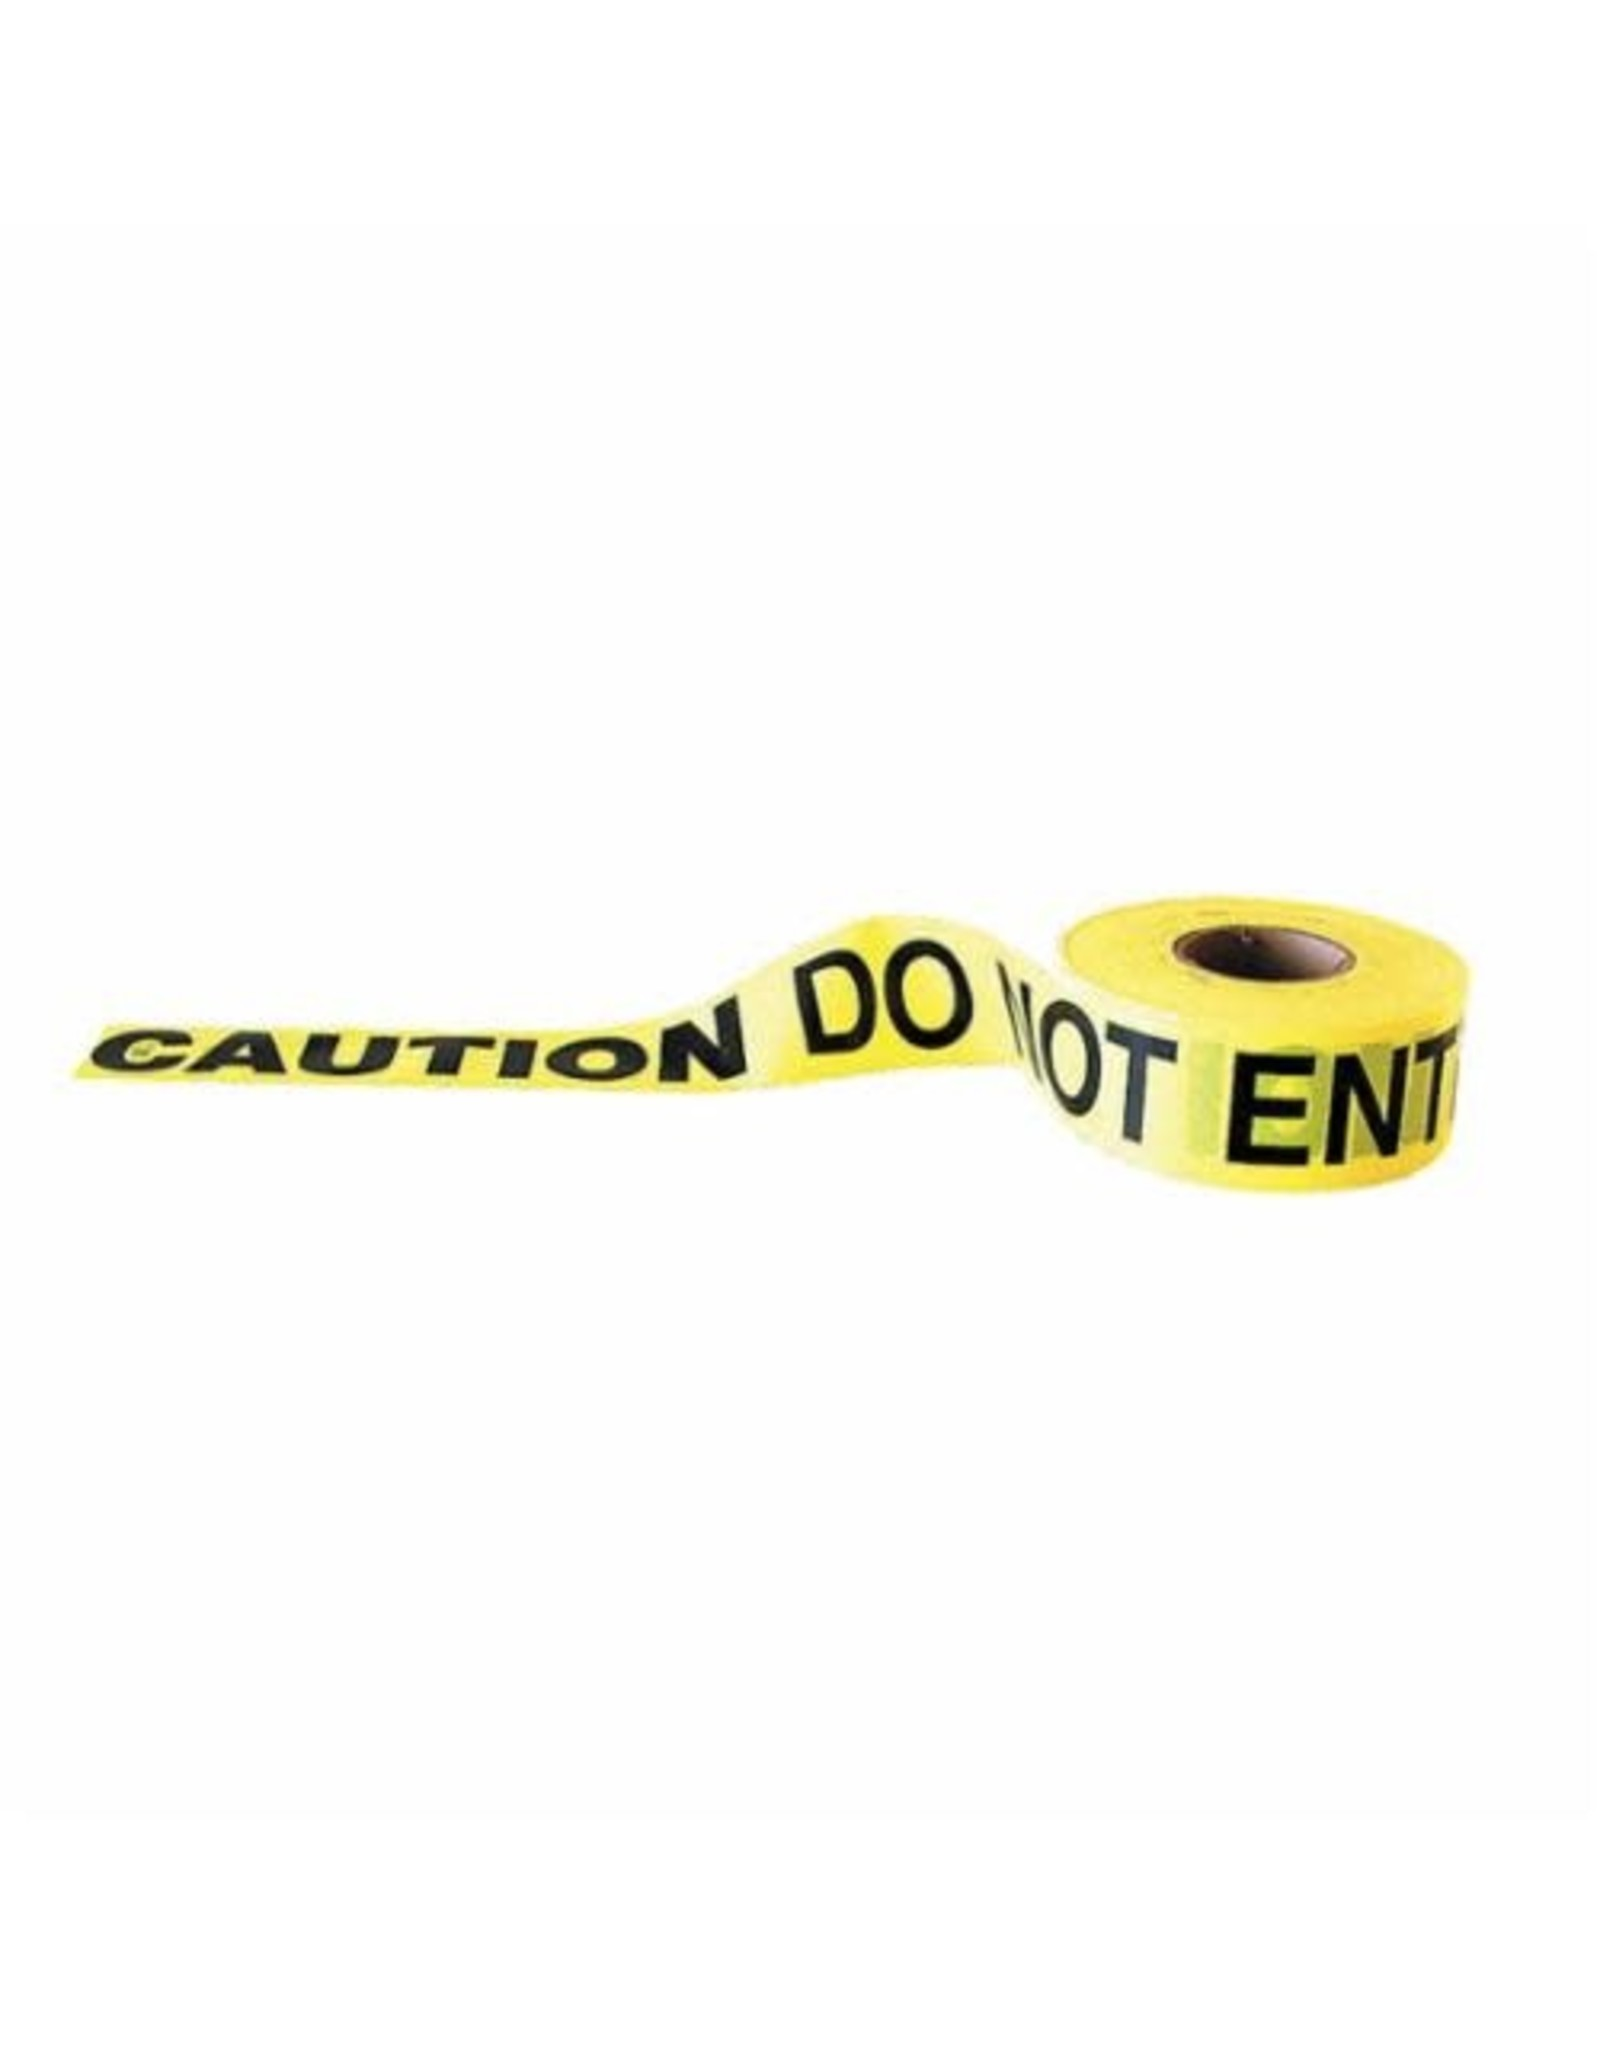 "Cordova Barricade Tape - Do Not Enter - 3"" x 1000 ft"